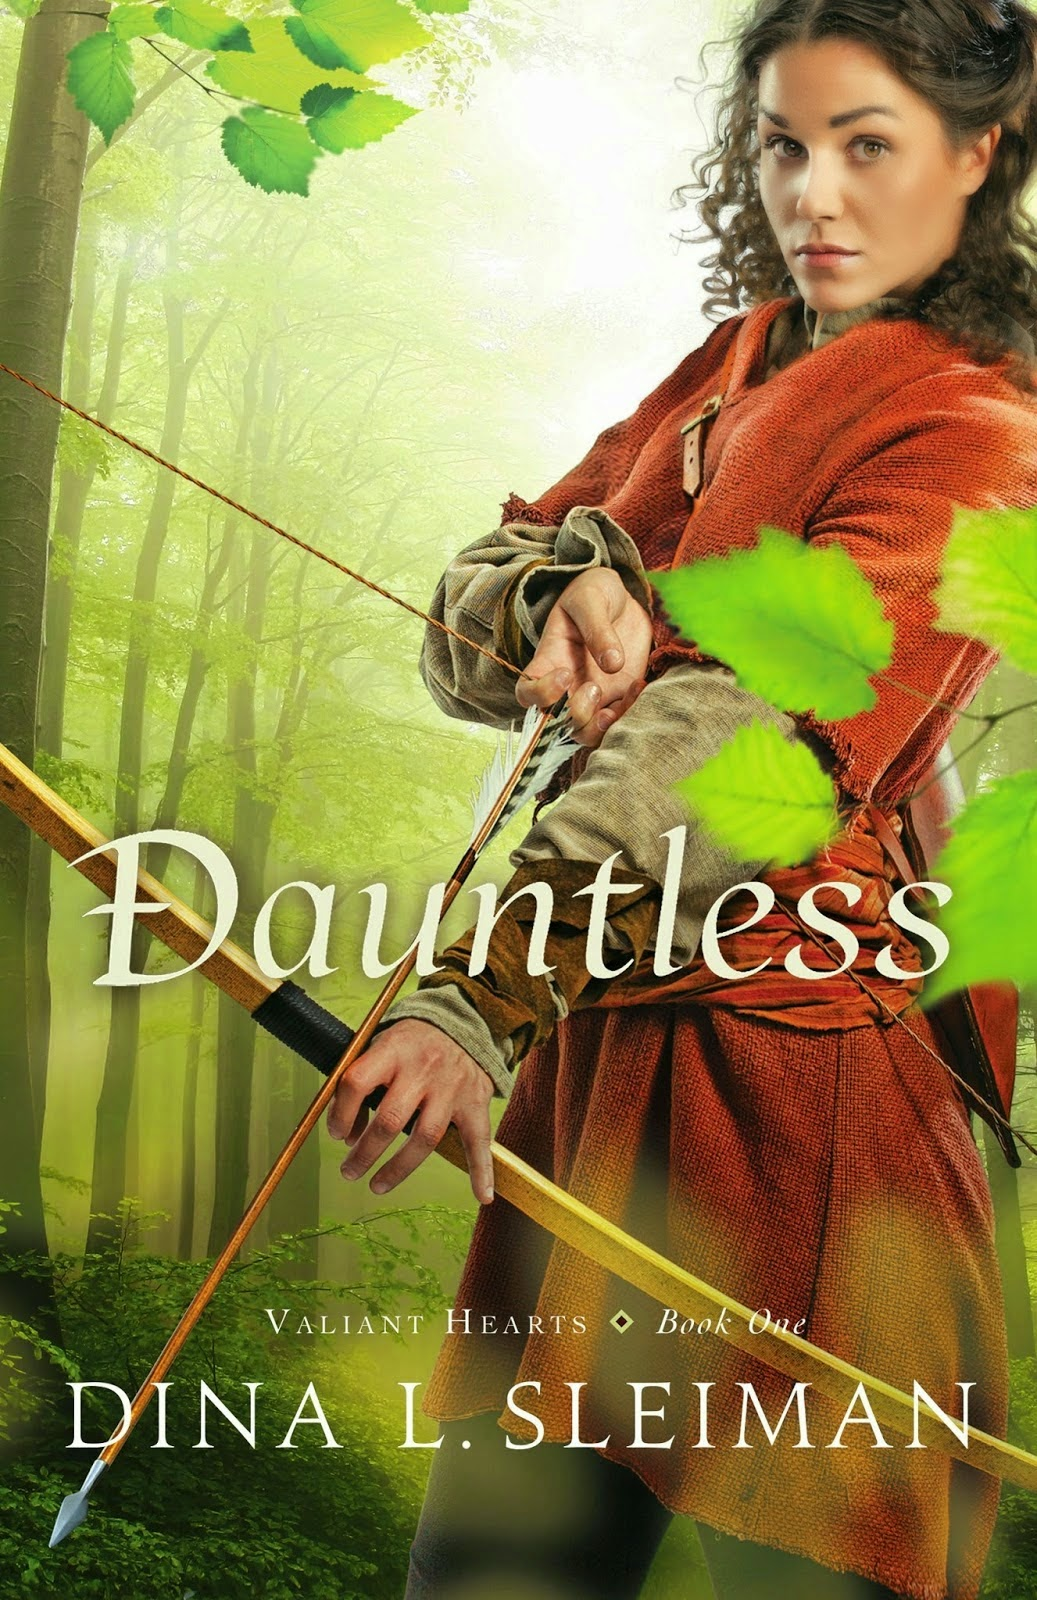 Book cover image of Dauntless by Dina L. Sleiman